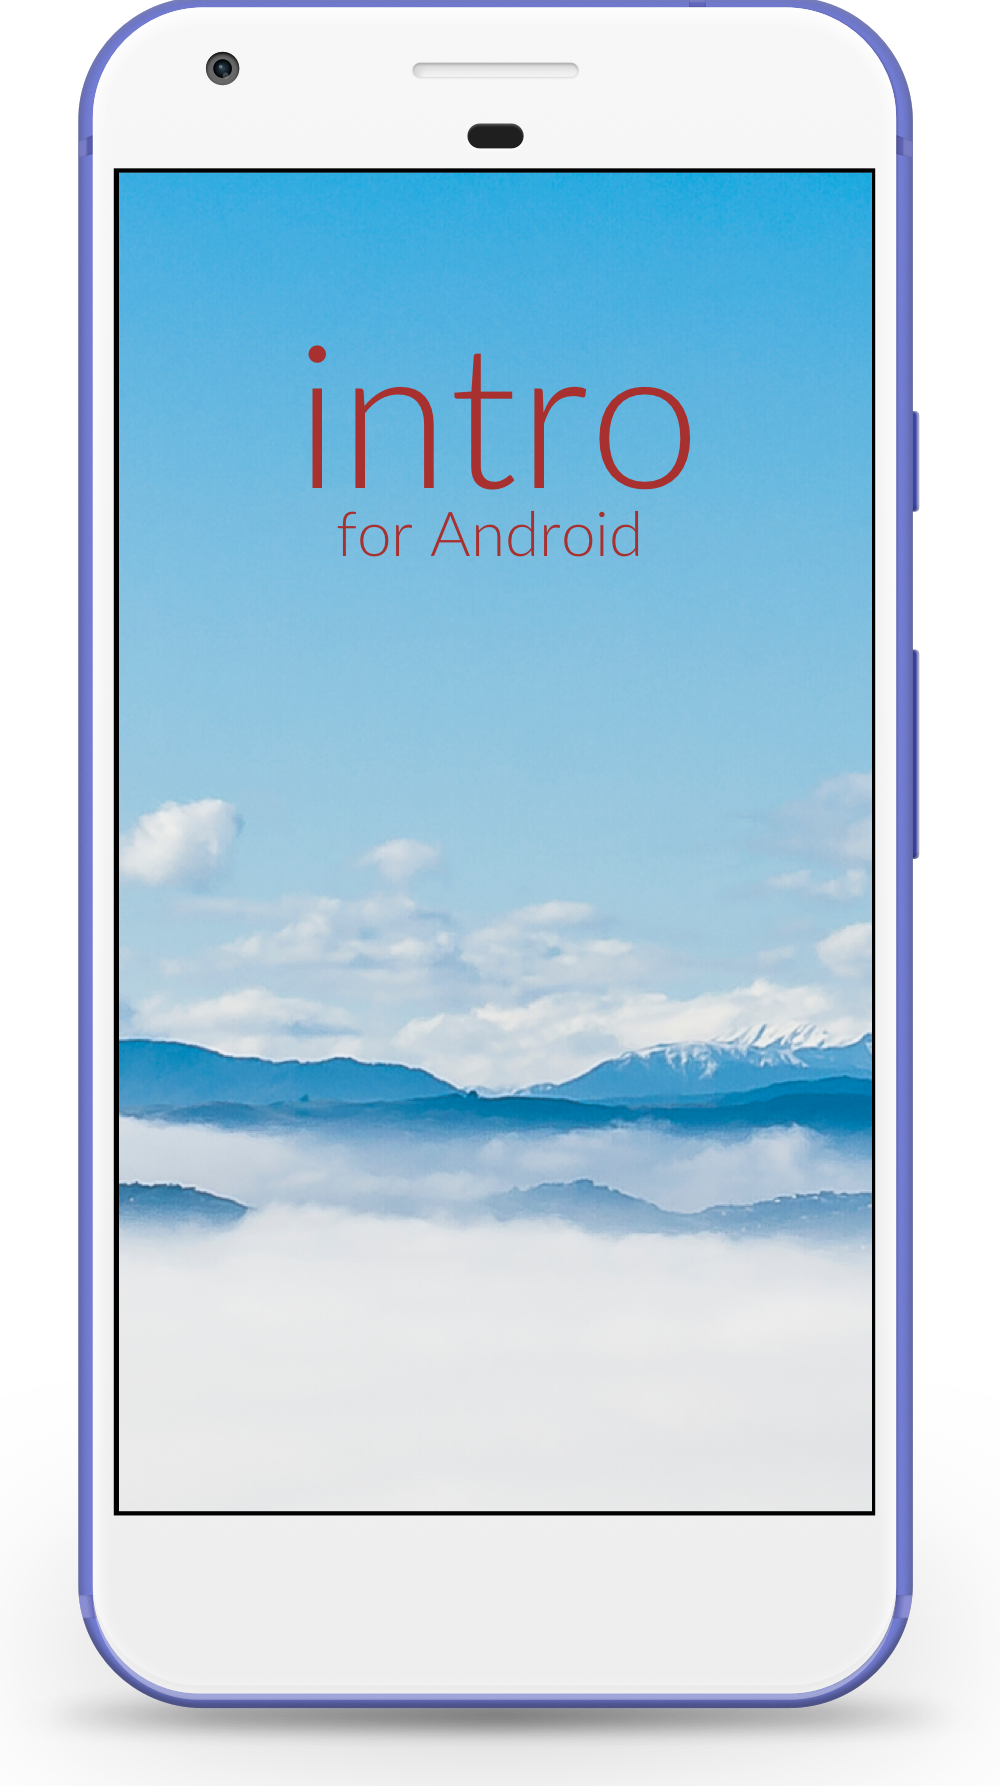 Intro launch screen illustrated on a Google Pixel Android phone.